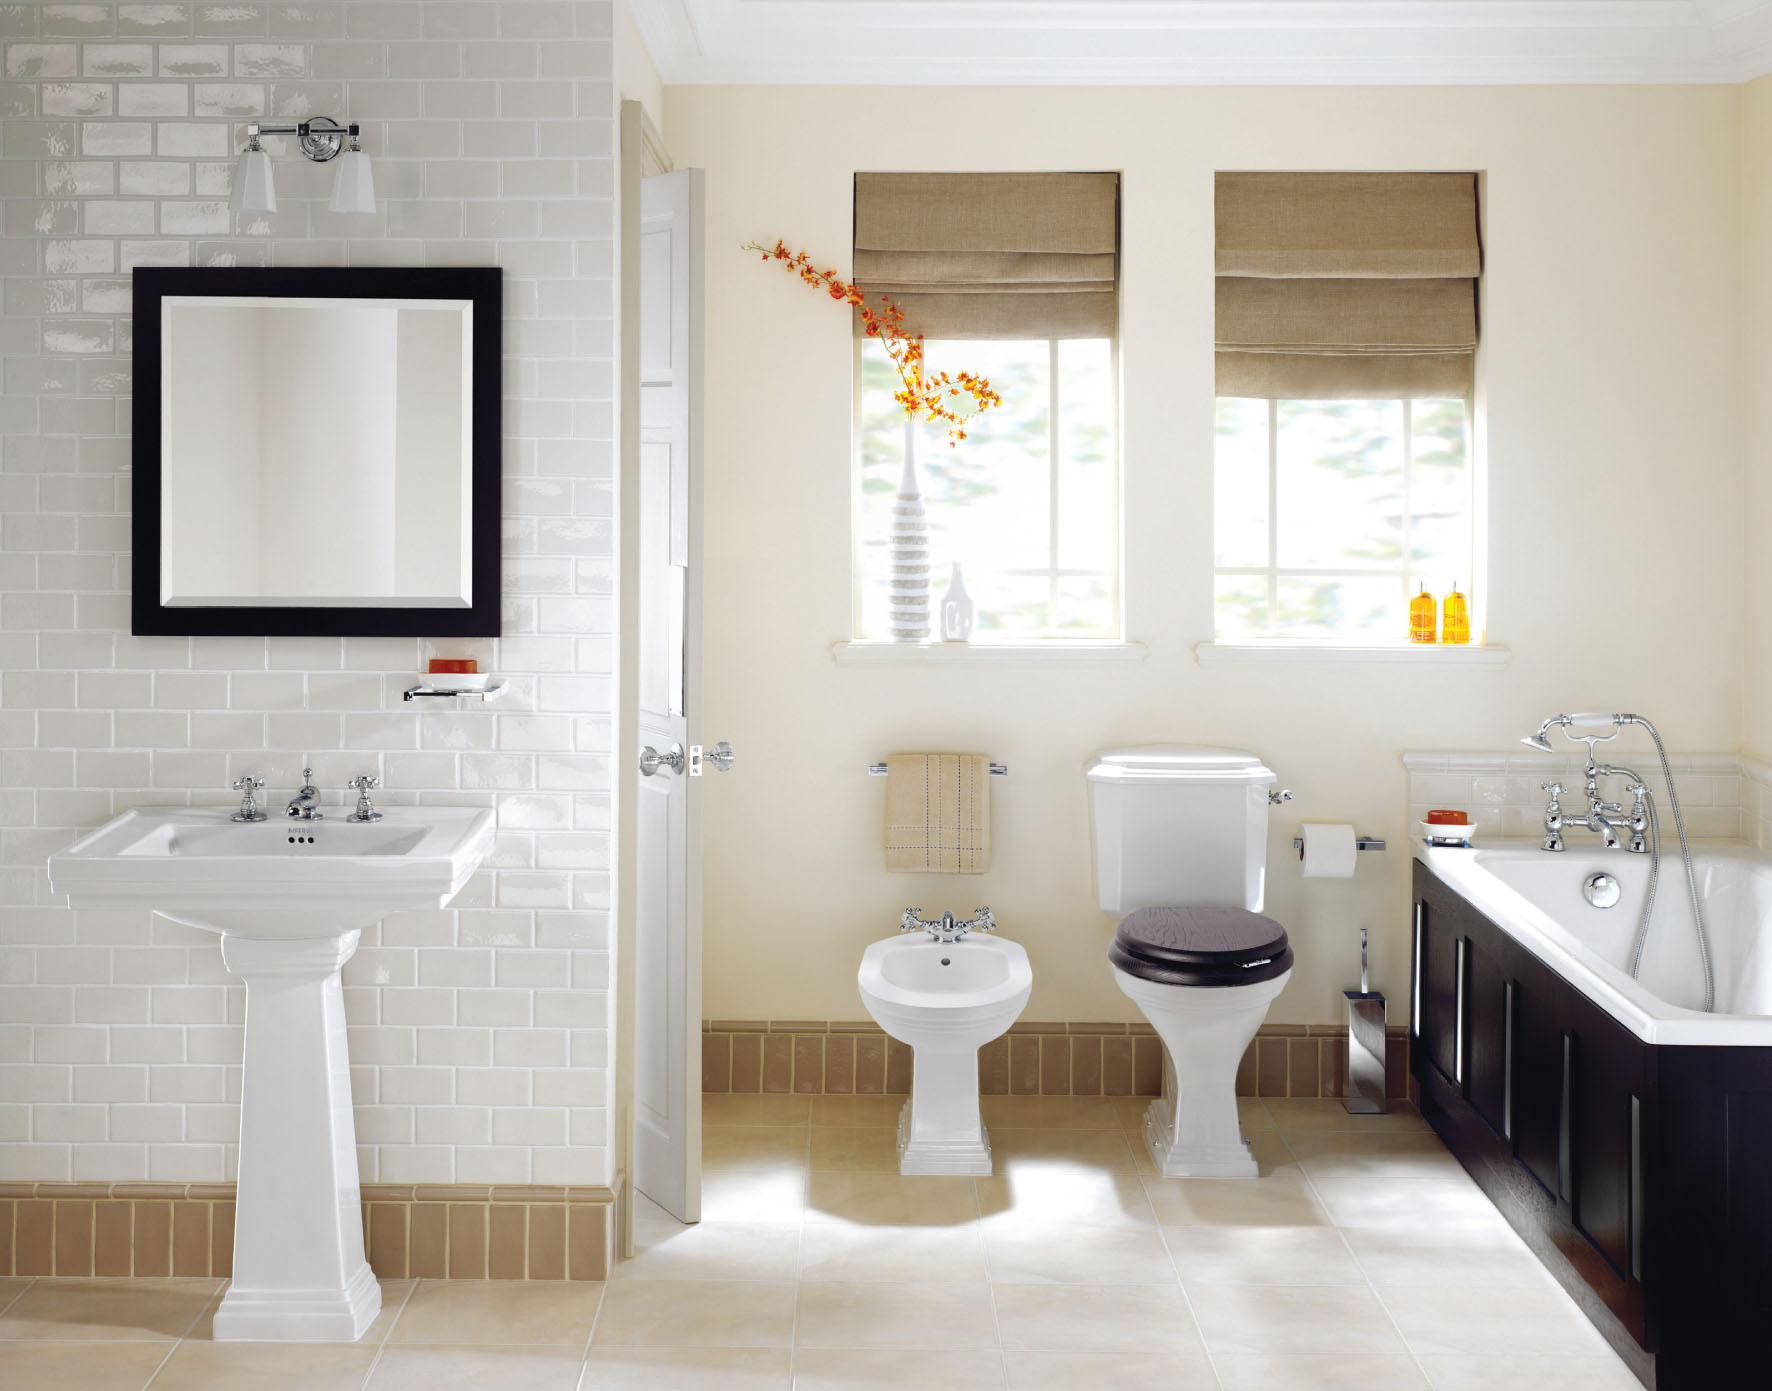 4 Design Trends For The Bathroom What You\'ll See In 2015 | Home ...